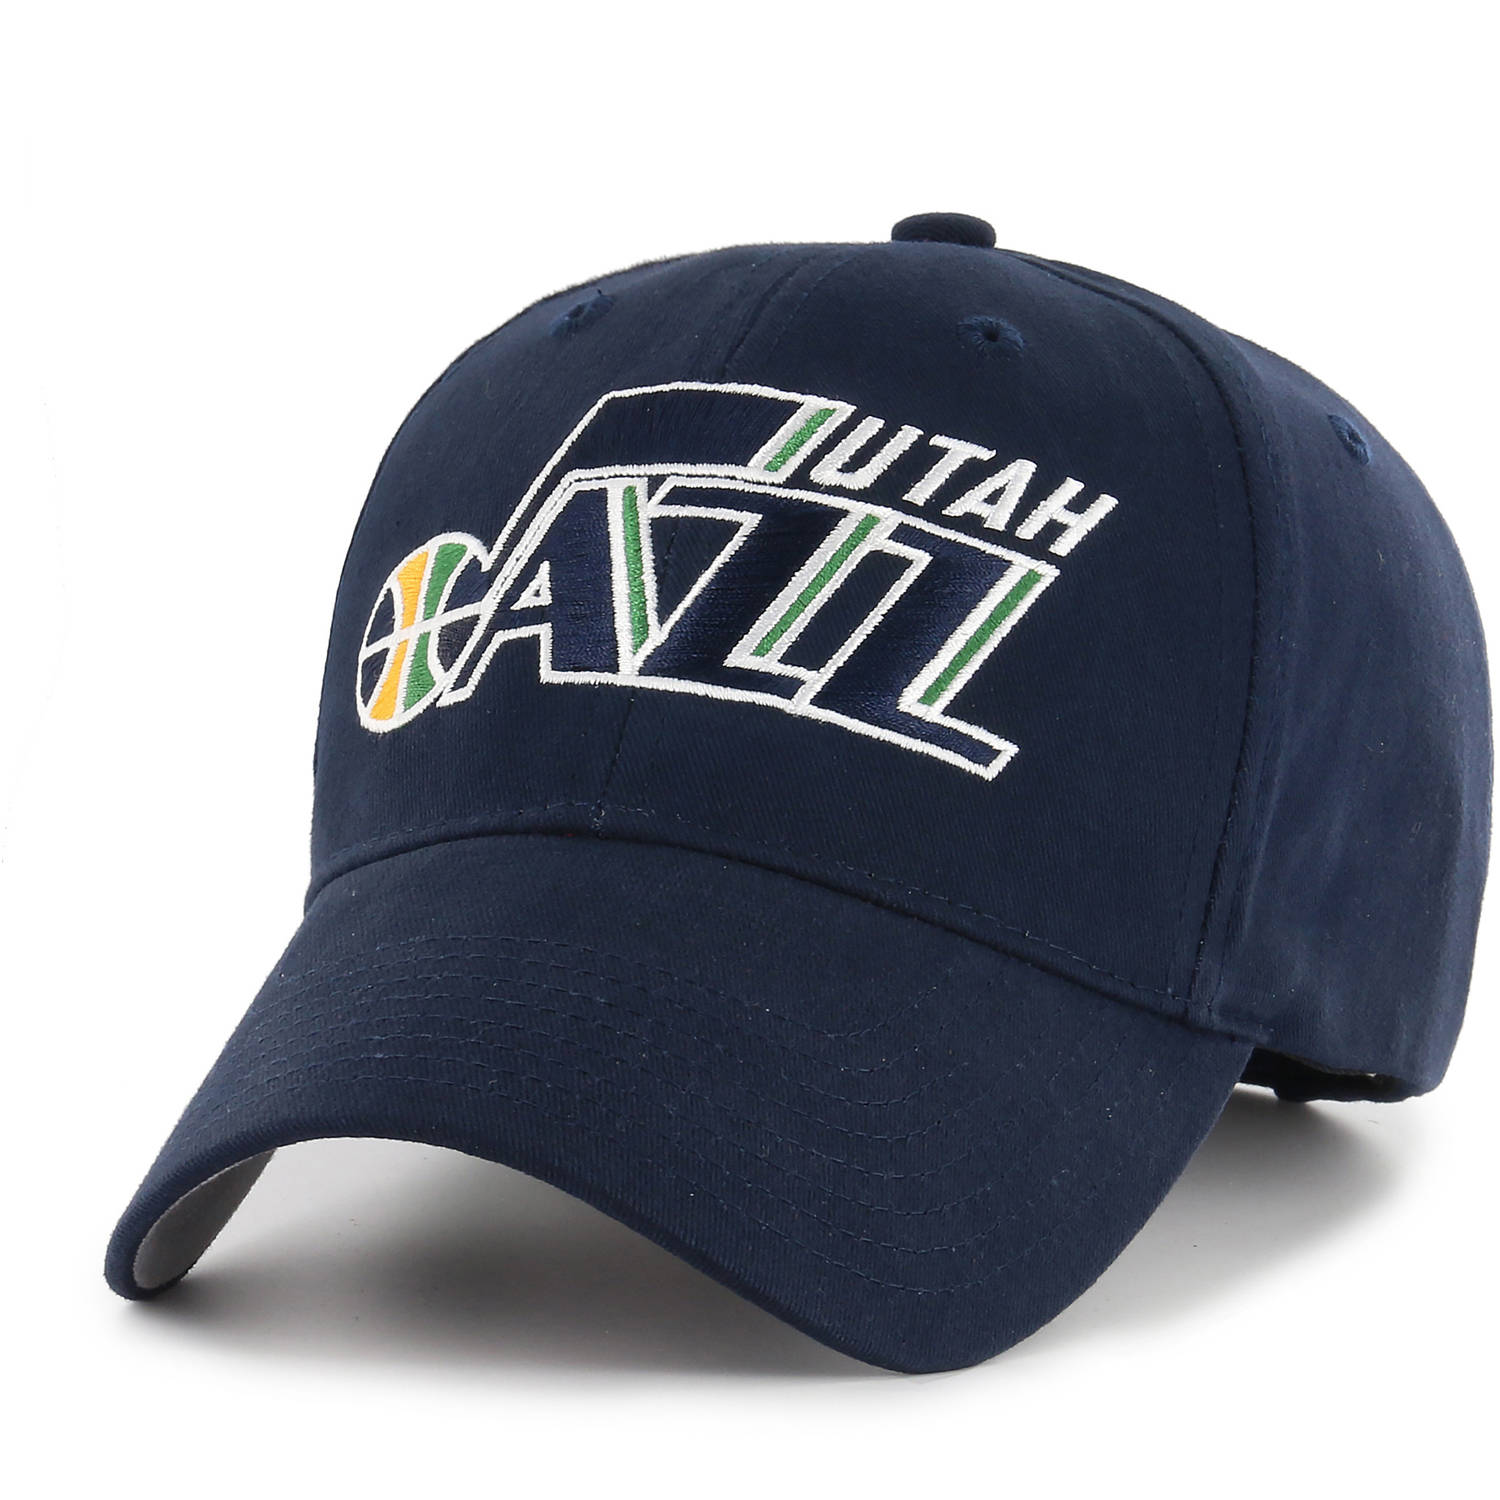 NBA Utah Jazz Basic Cap/Hat - Fan Favorite